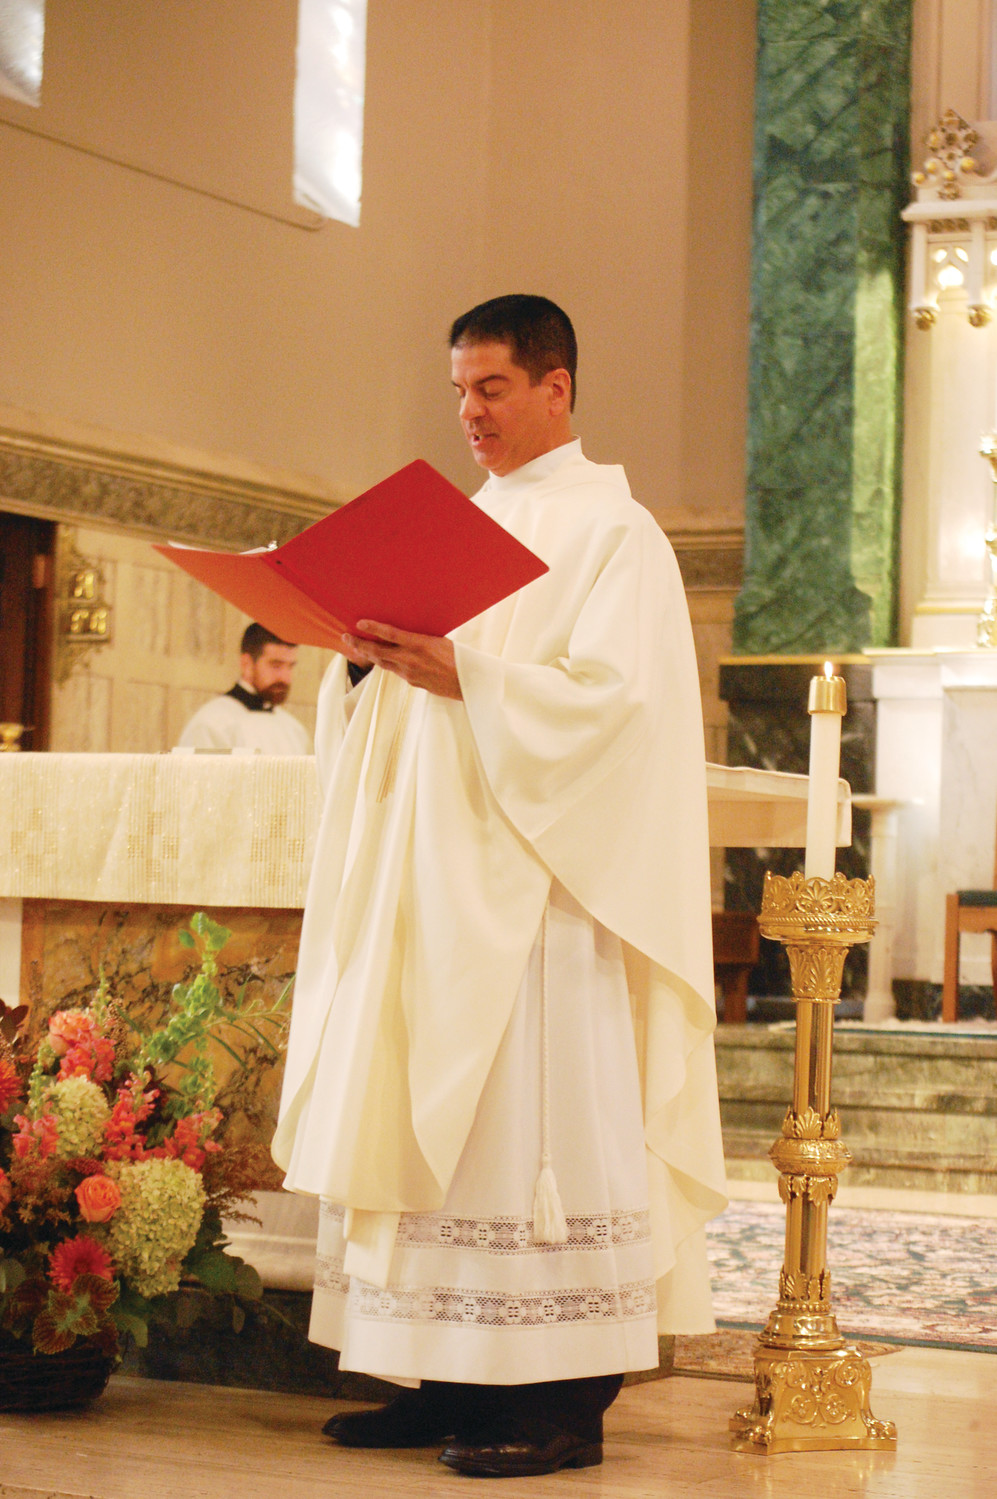 Father Sousa leads the congregation in the Creed and takes an Oath of Fidelity to the teaching authority of the Church at his installation Mass.